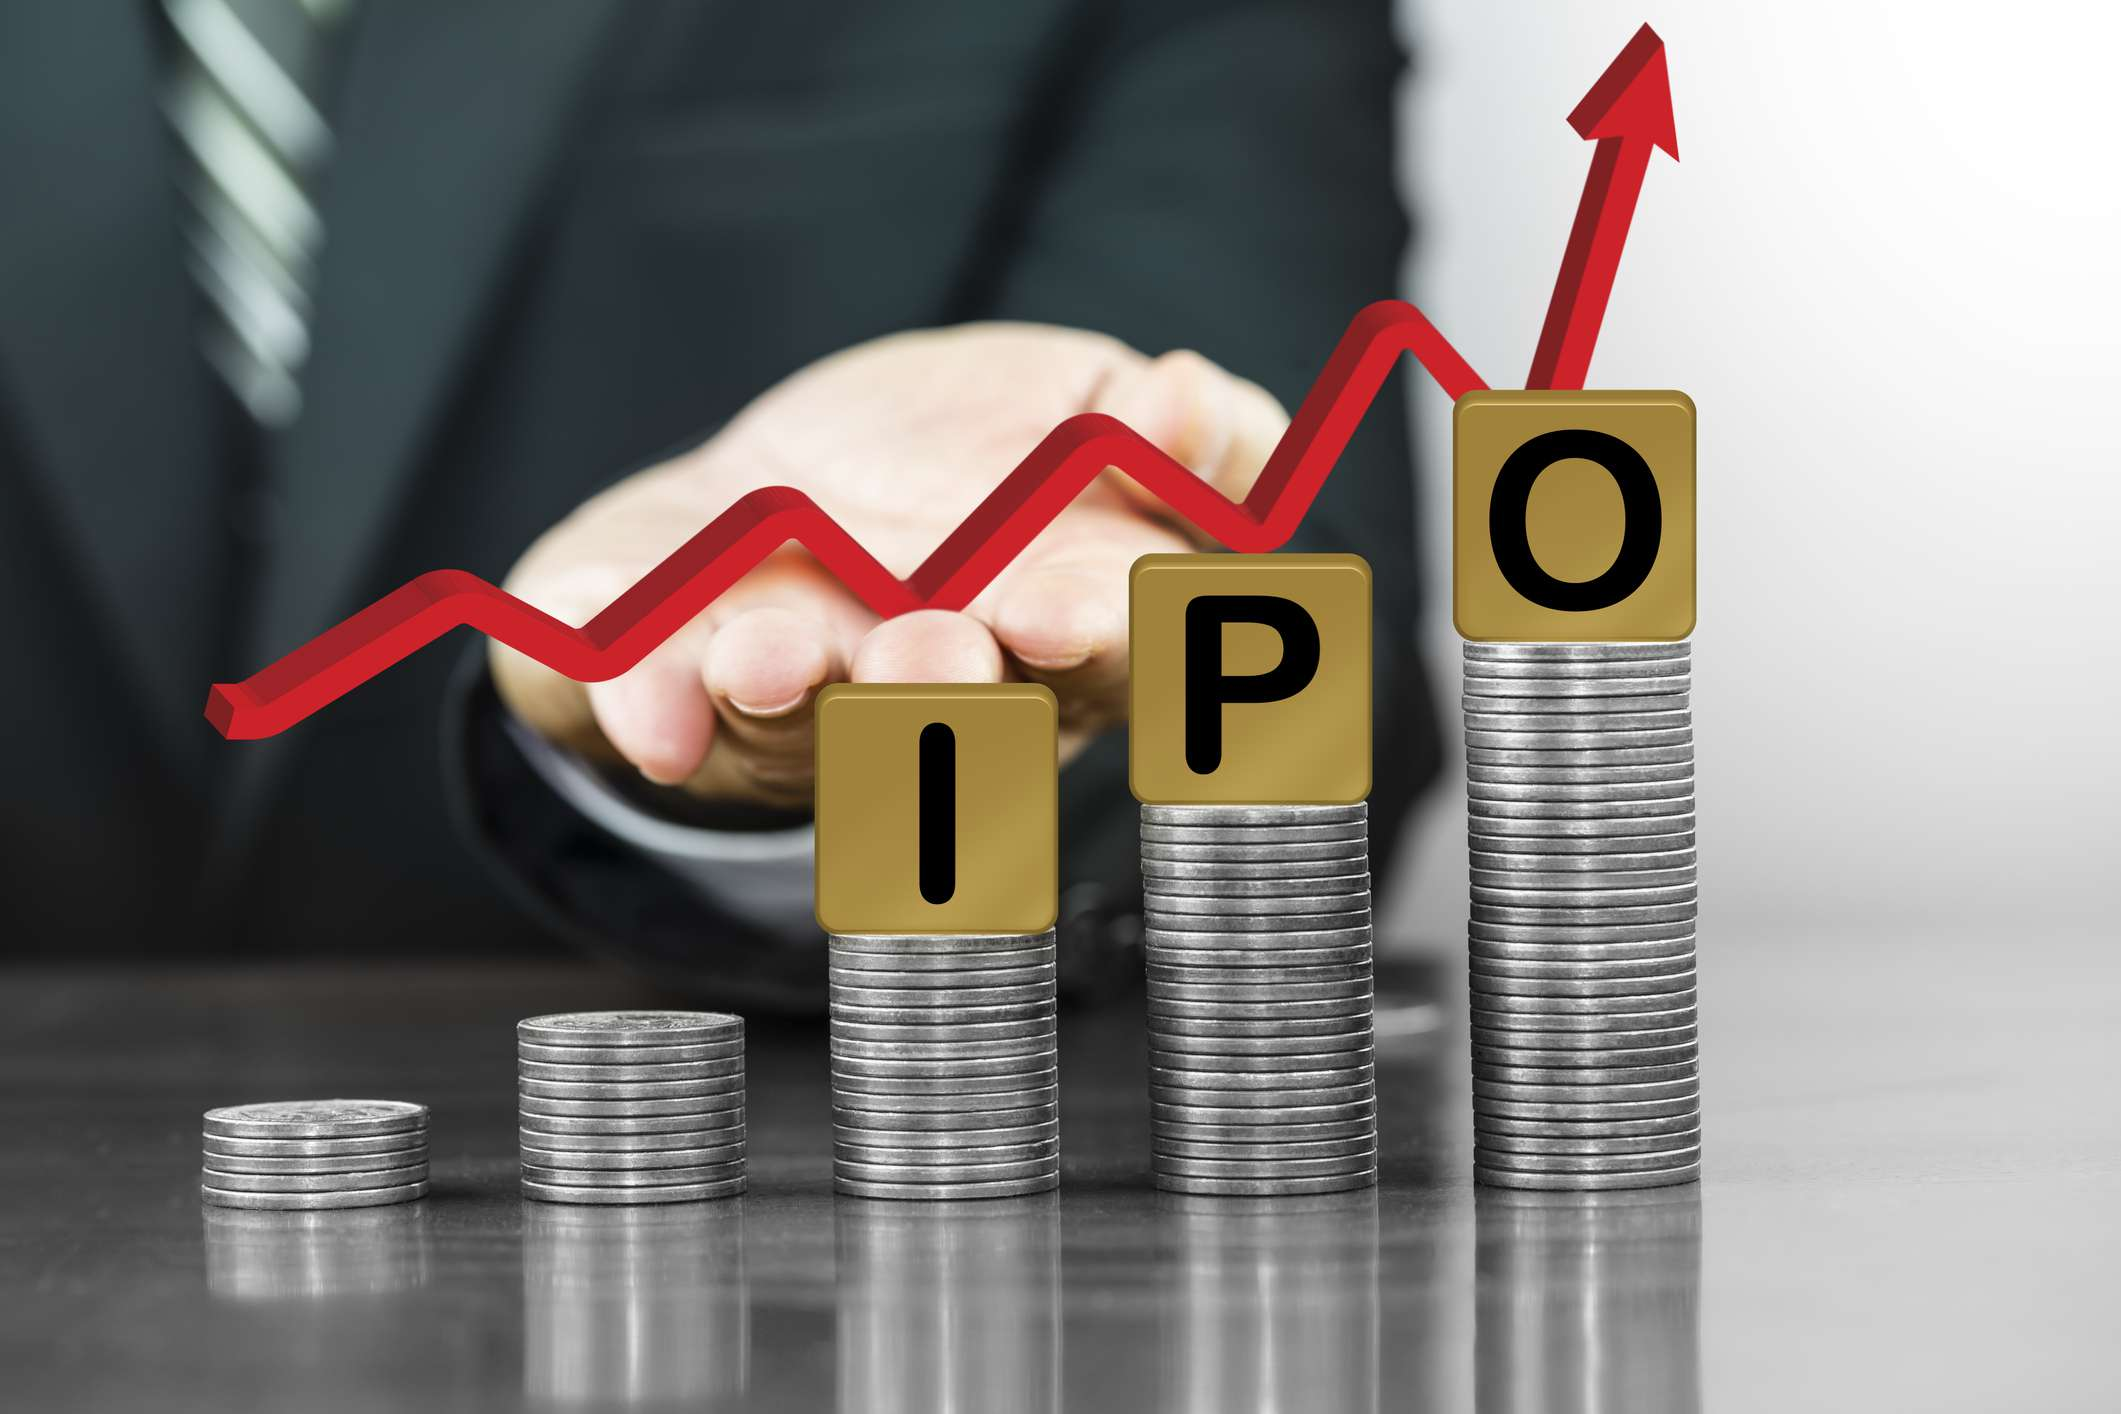 Advantages and Disadvantages of Investing in an IPO